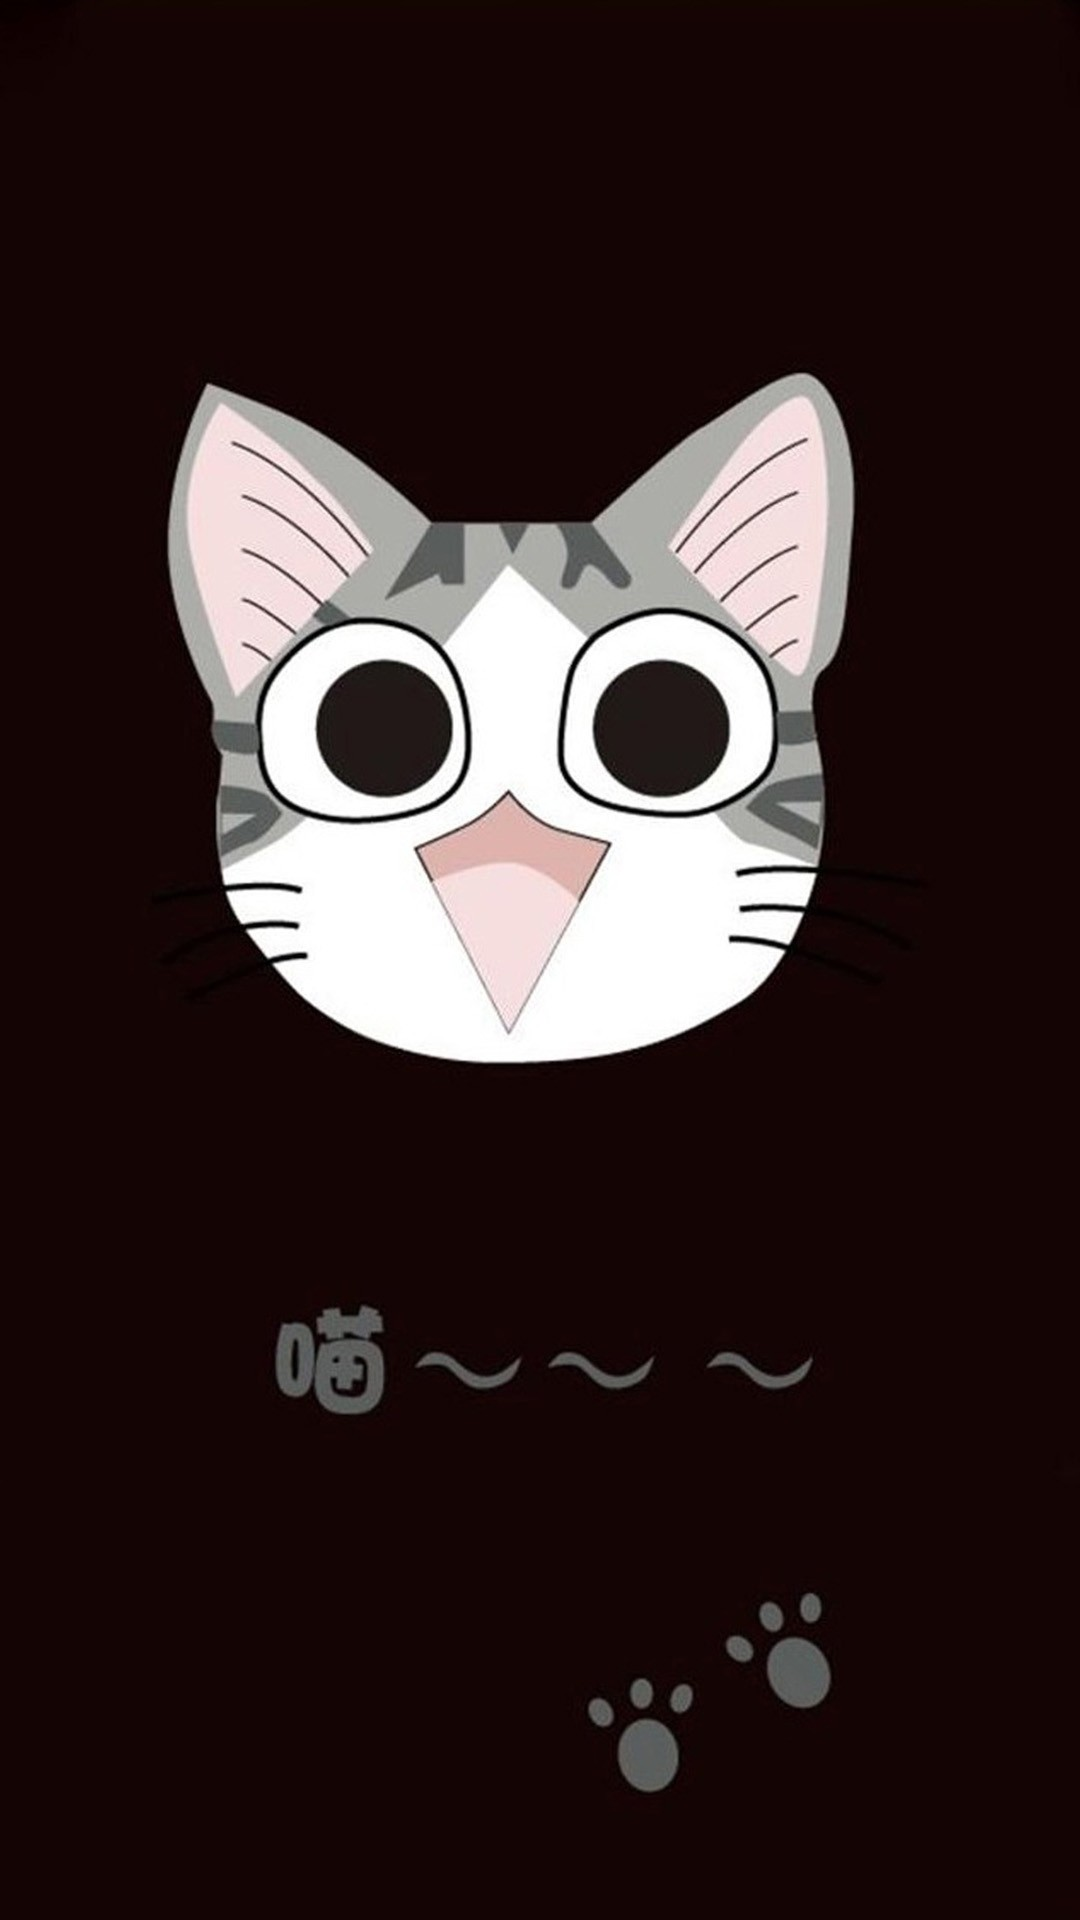 1080x1920 Cute Cartoon Cat Wallpaper - Wallpapersafari